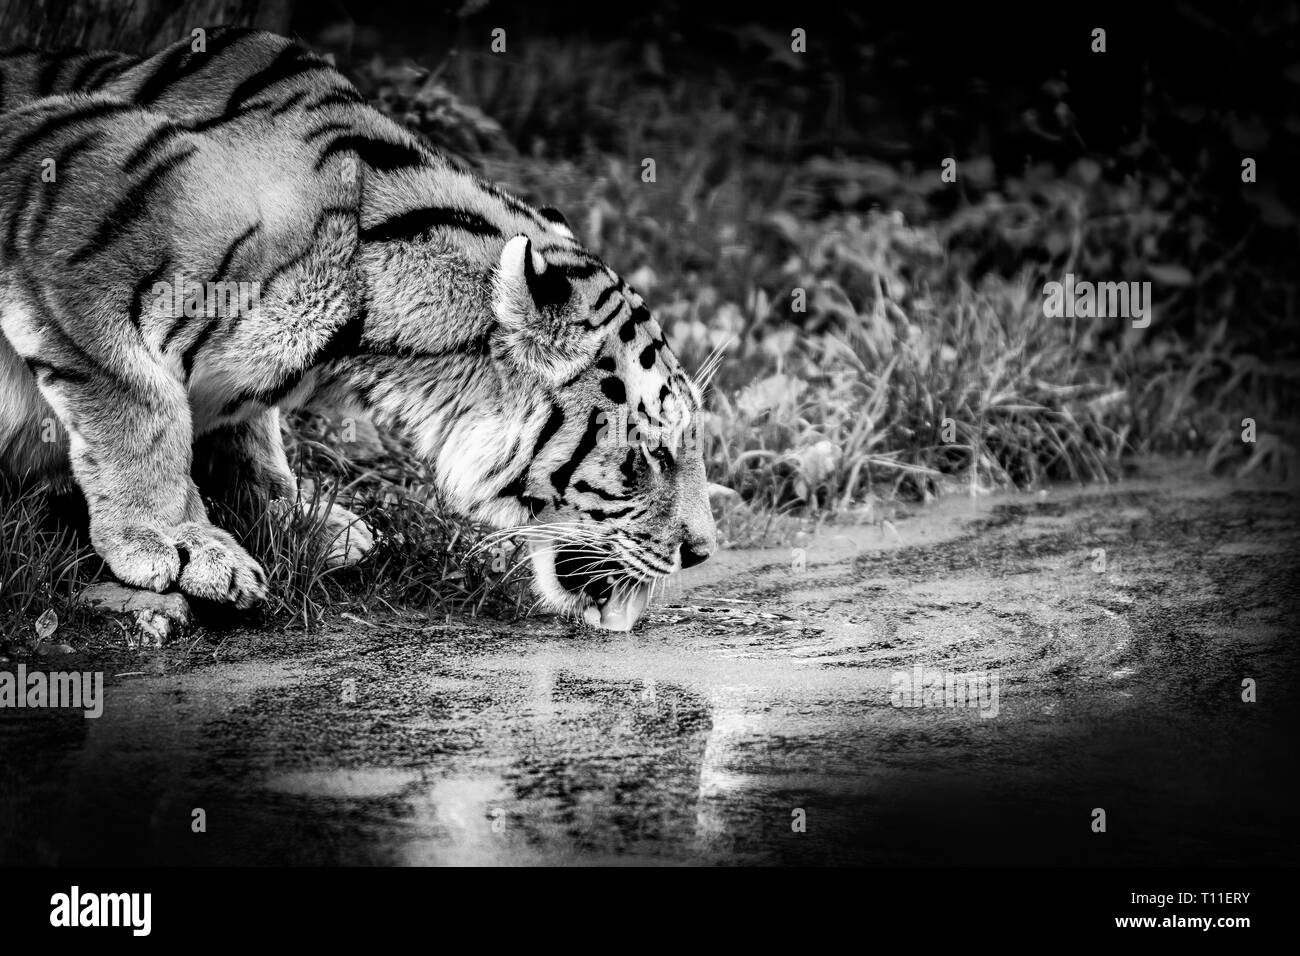 Siberian Tiger drinking from a pond. - Stock Image